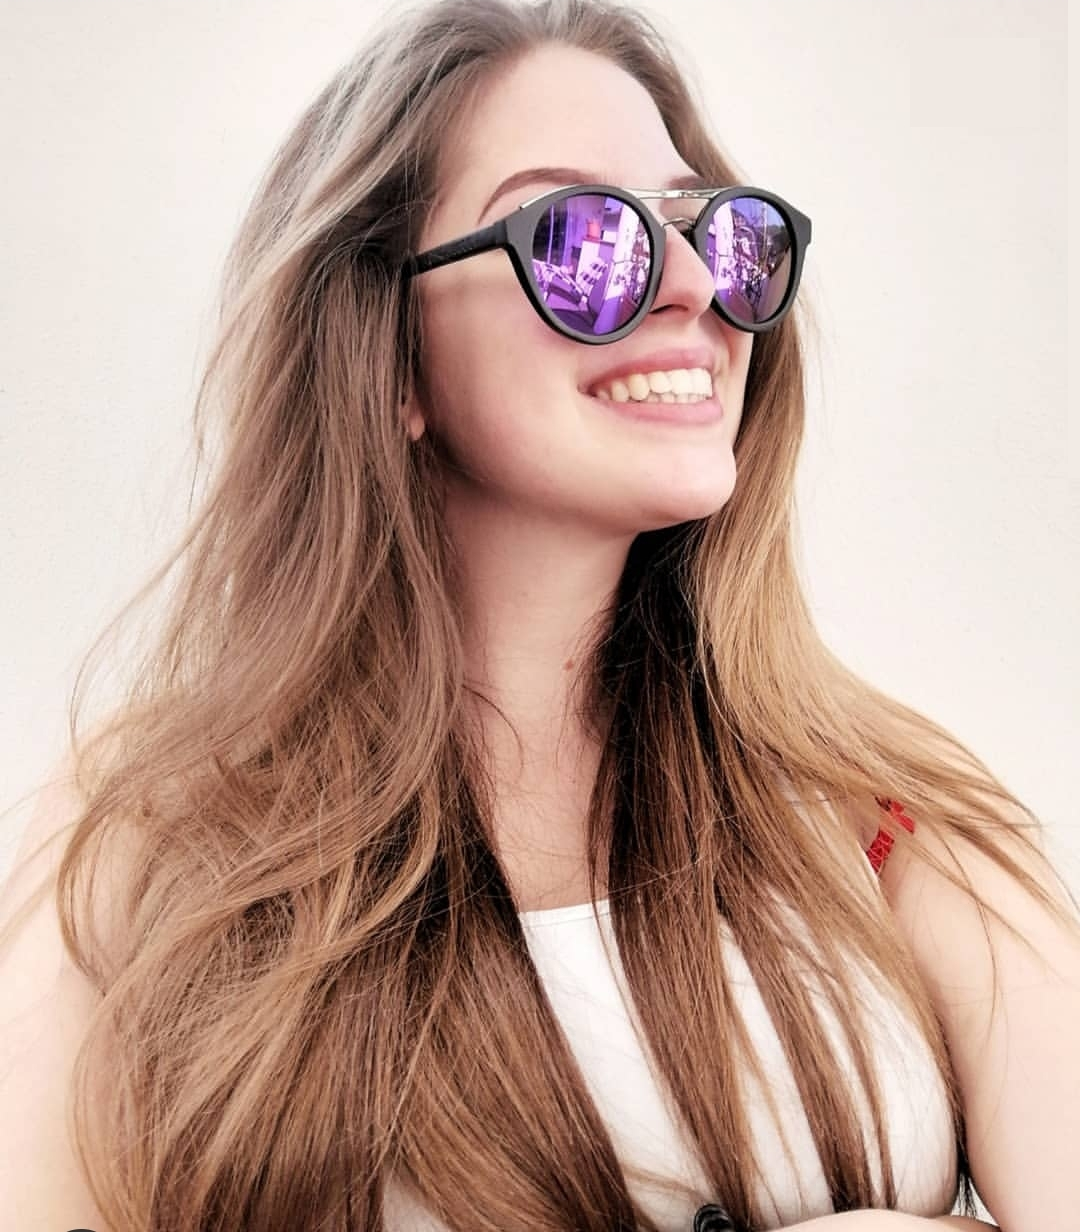 chiara pastore wooden shade holz sonnenbrillen model 2019 Valda Sunglasses wood sunglasses